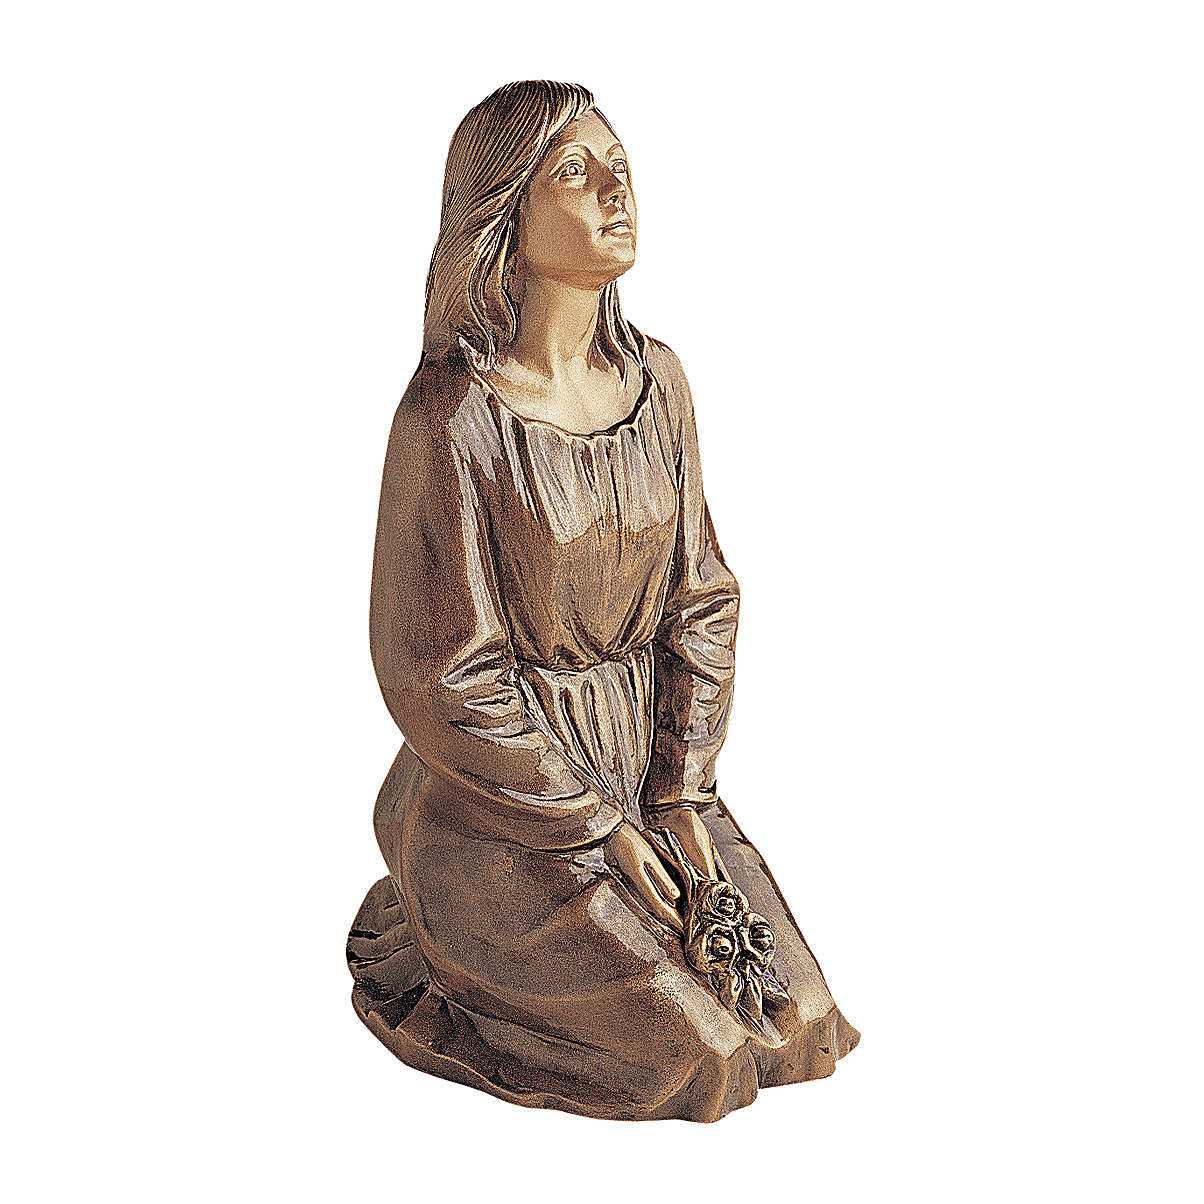 Statue of kneeling woman in bronze 45 cm for EXTERNAL USE 4